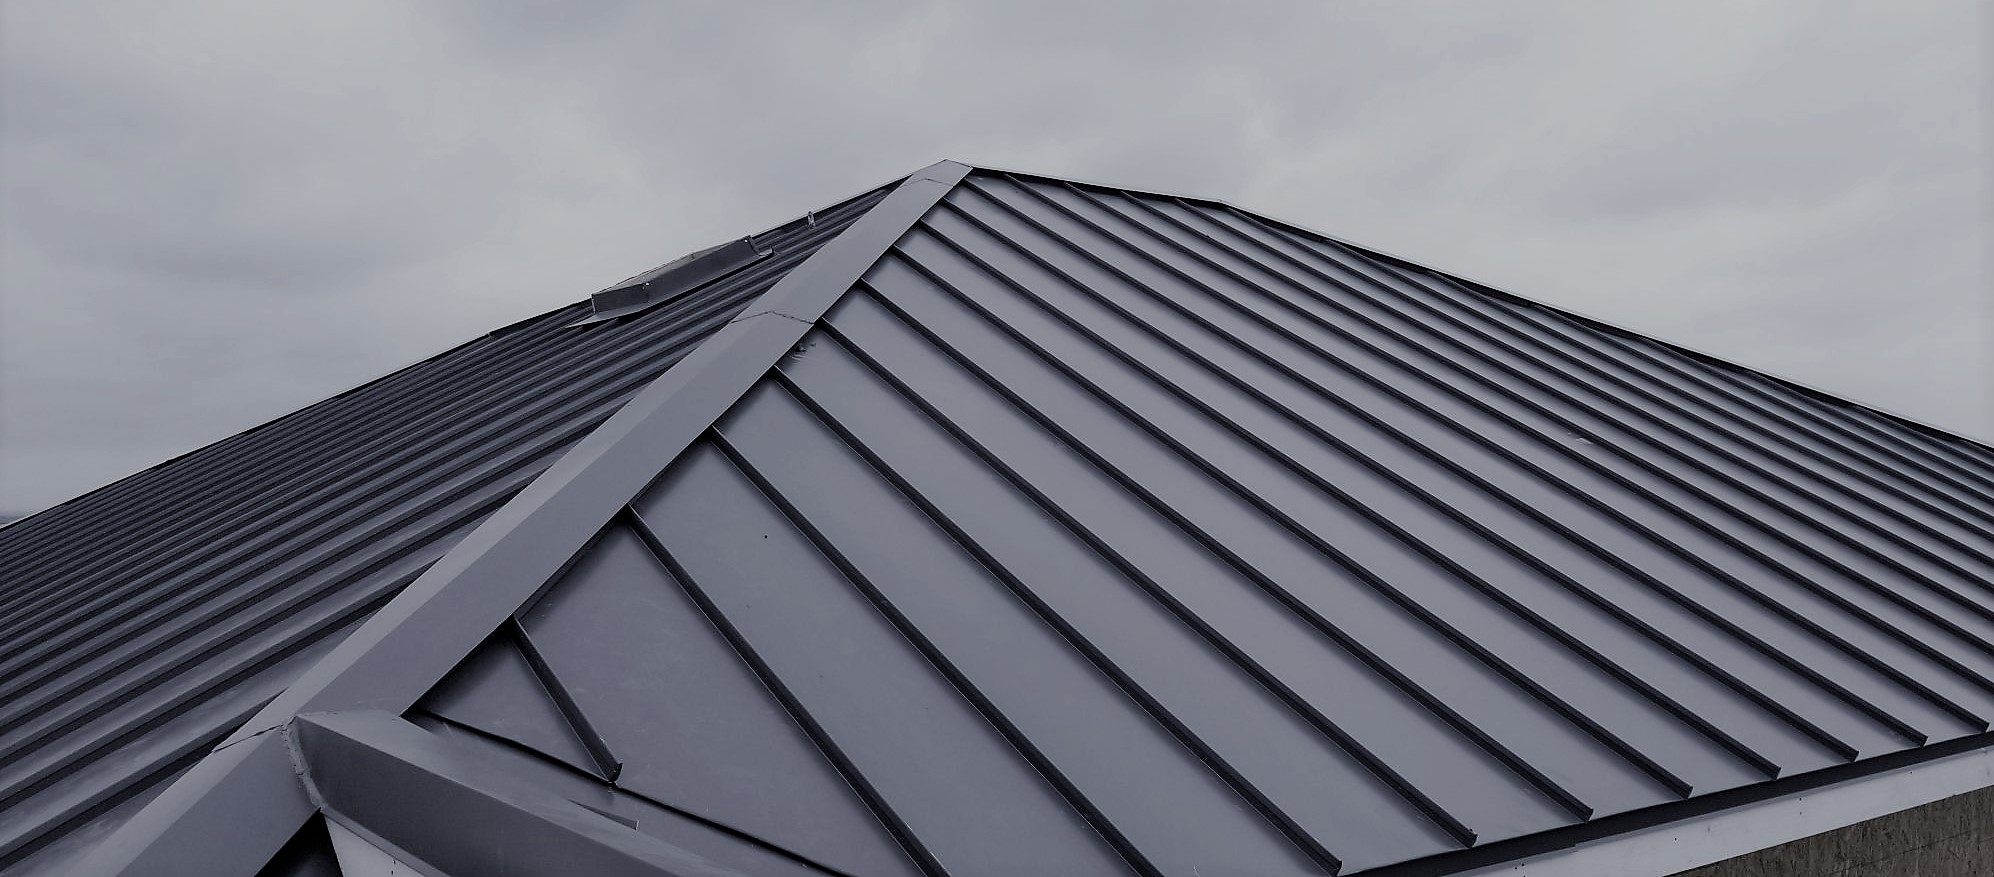 Is Roofing Felt Capable Of Stopping The Rain?